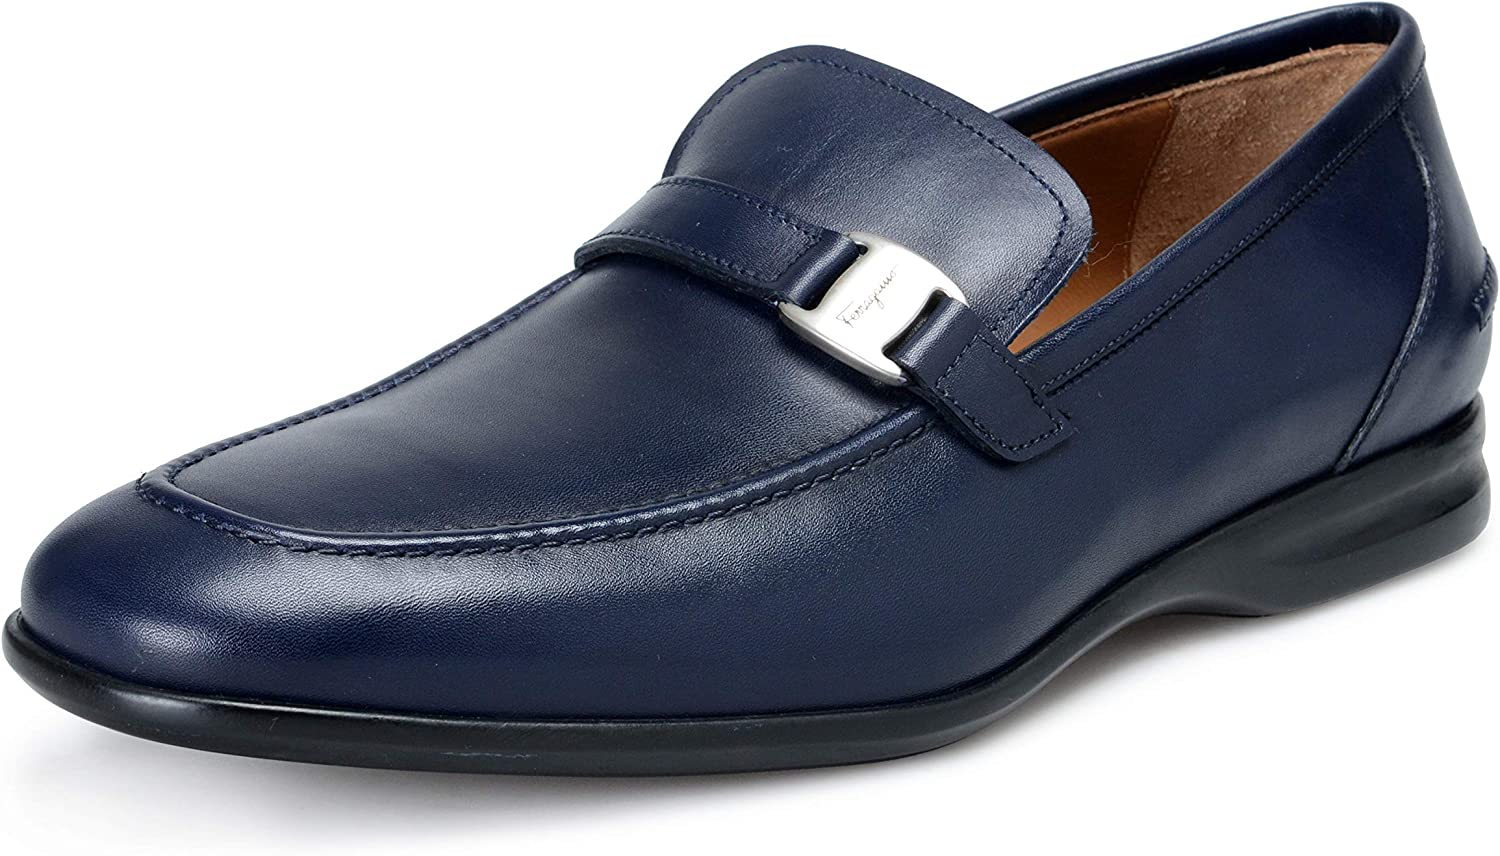 Blue Leather Slip On Loafers Shoes Sz